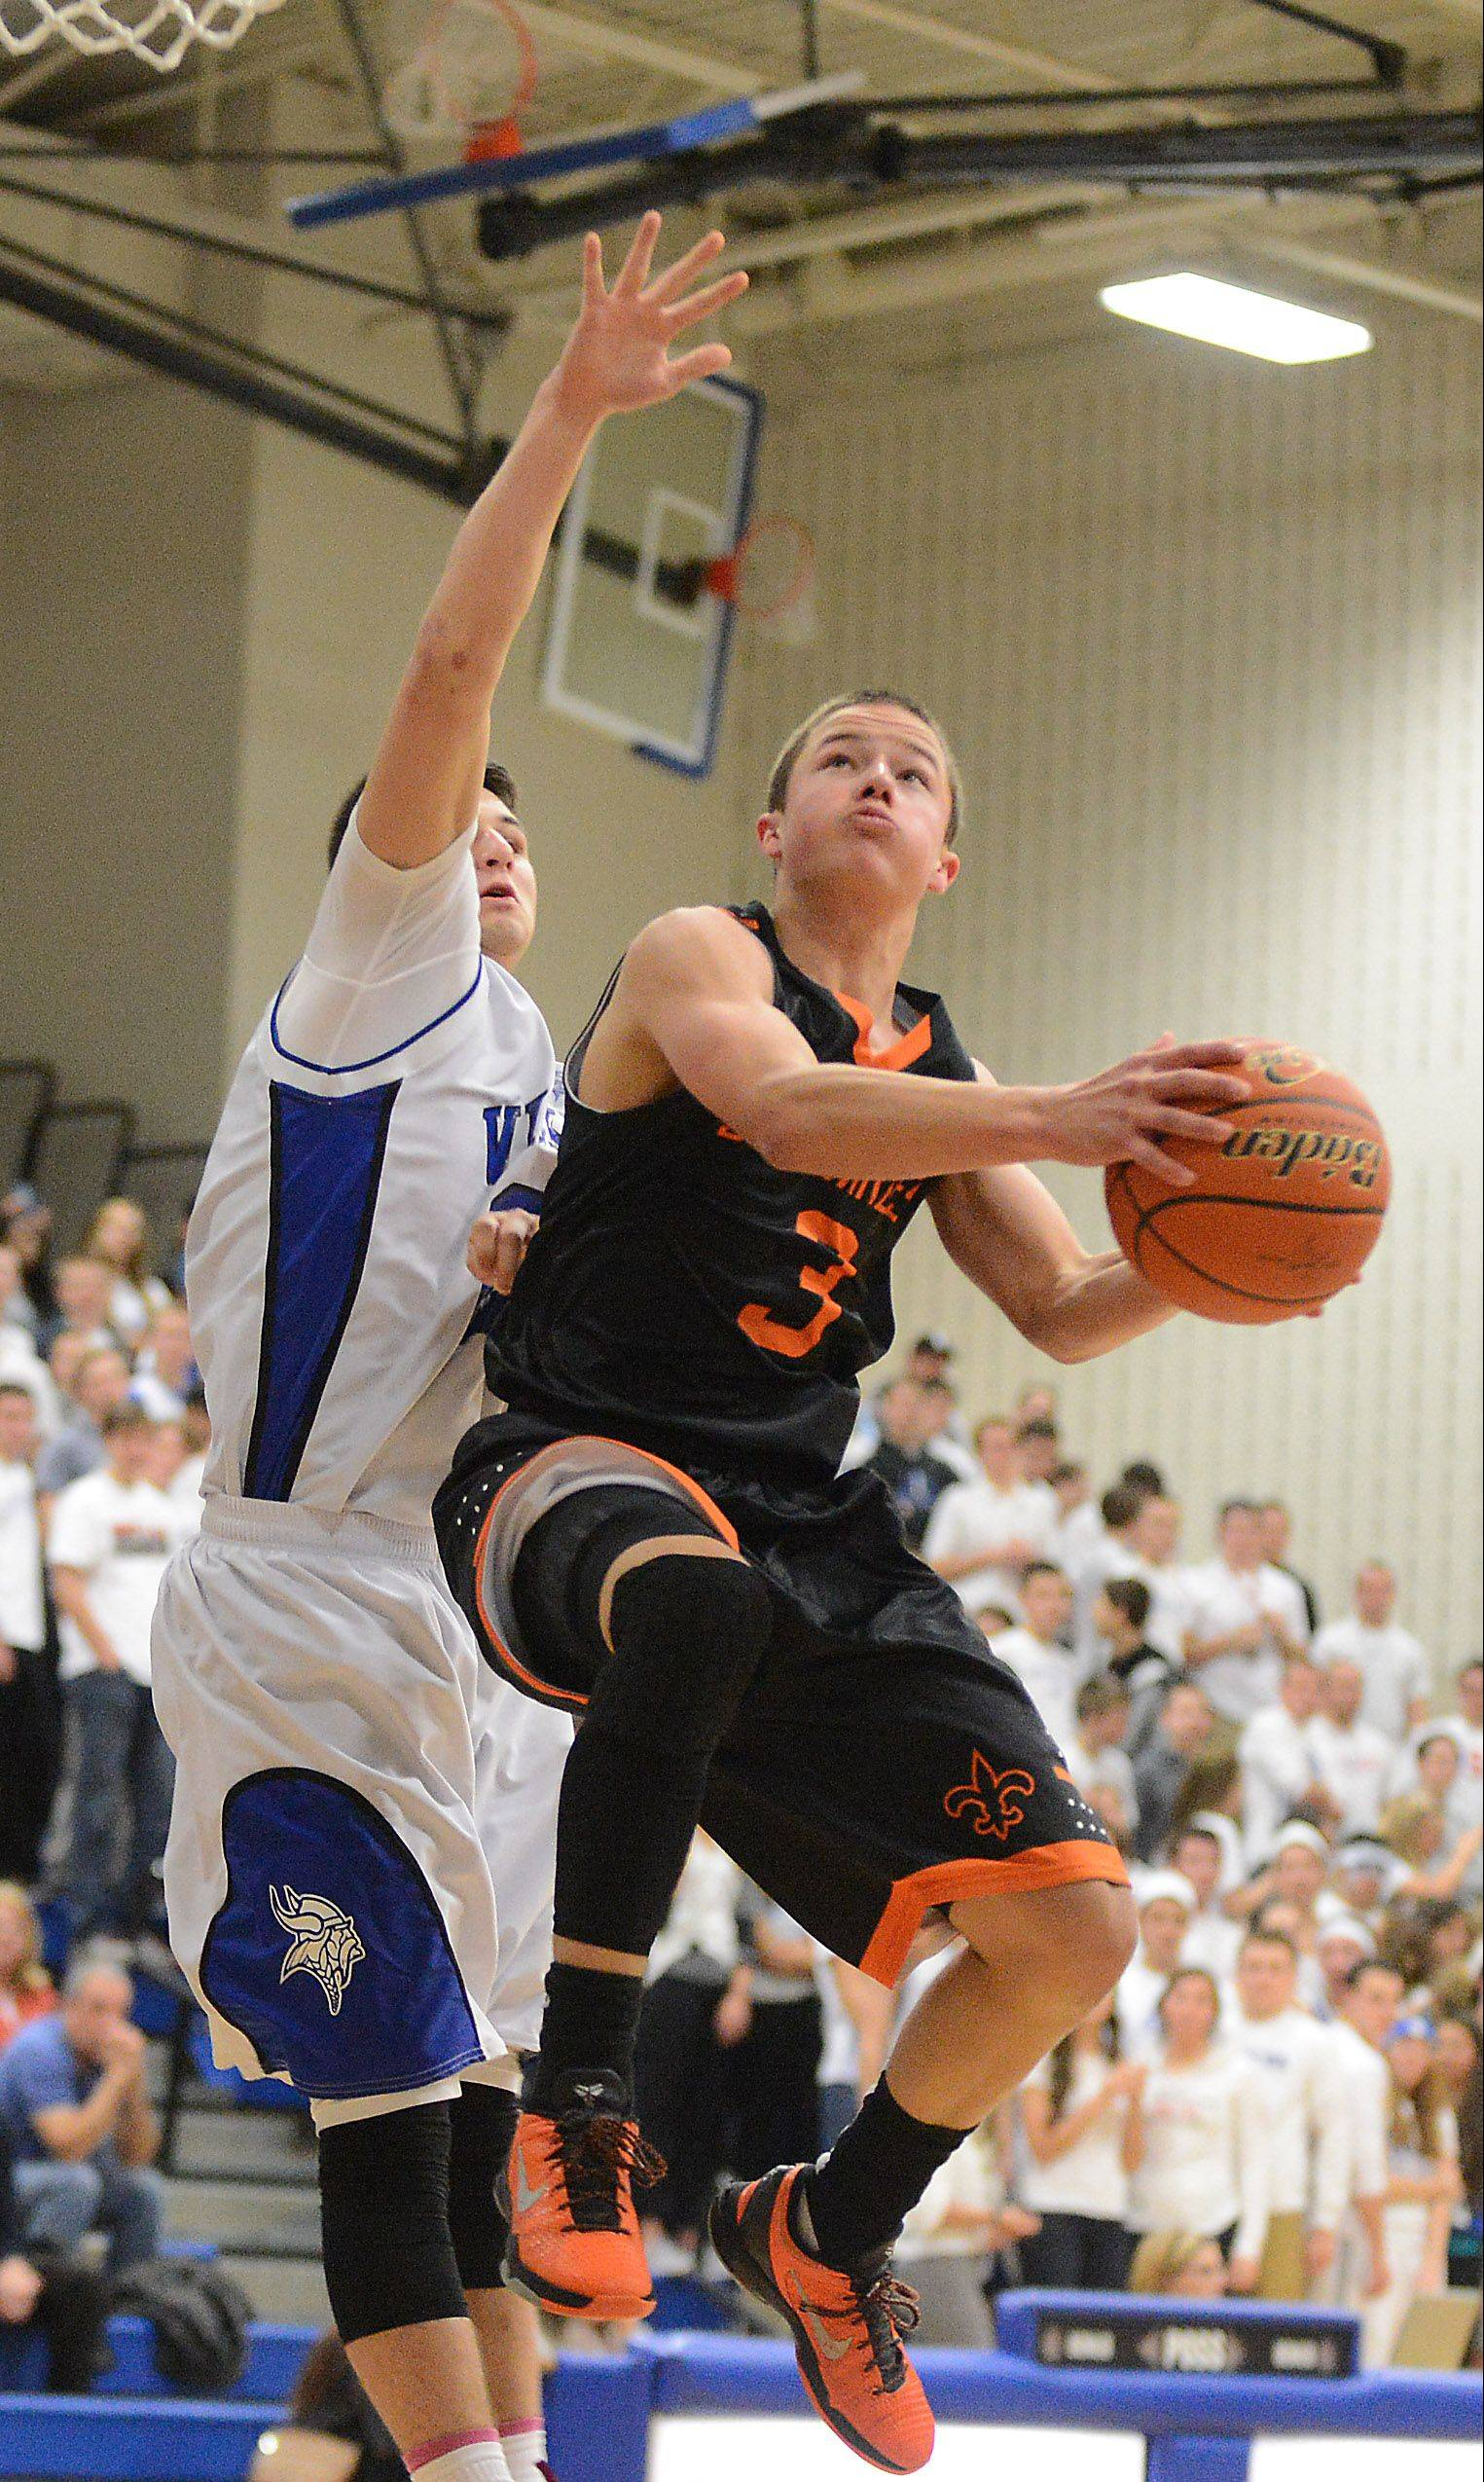 St. Charles East's Cole Gentry drives and scores during Friday's game in Geneva.